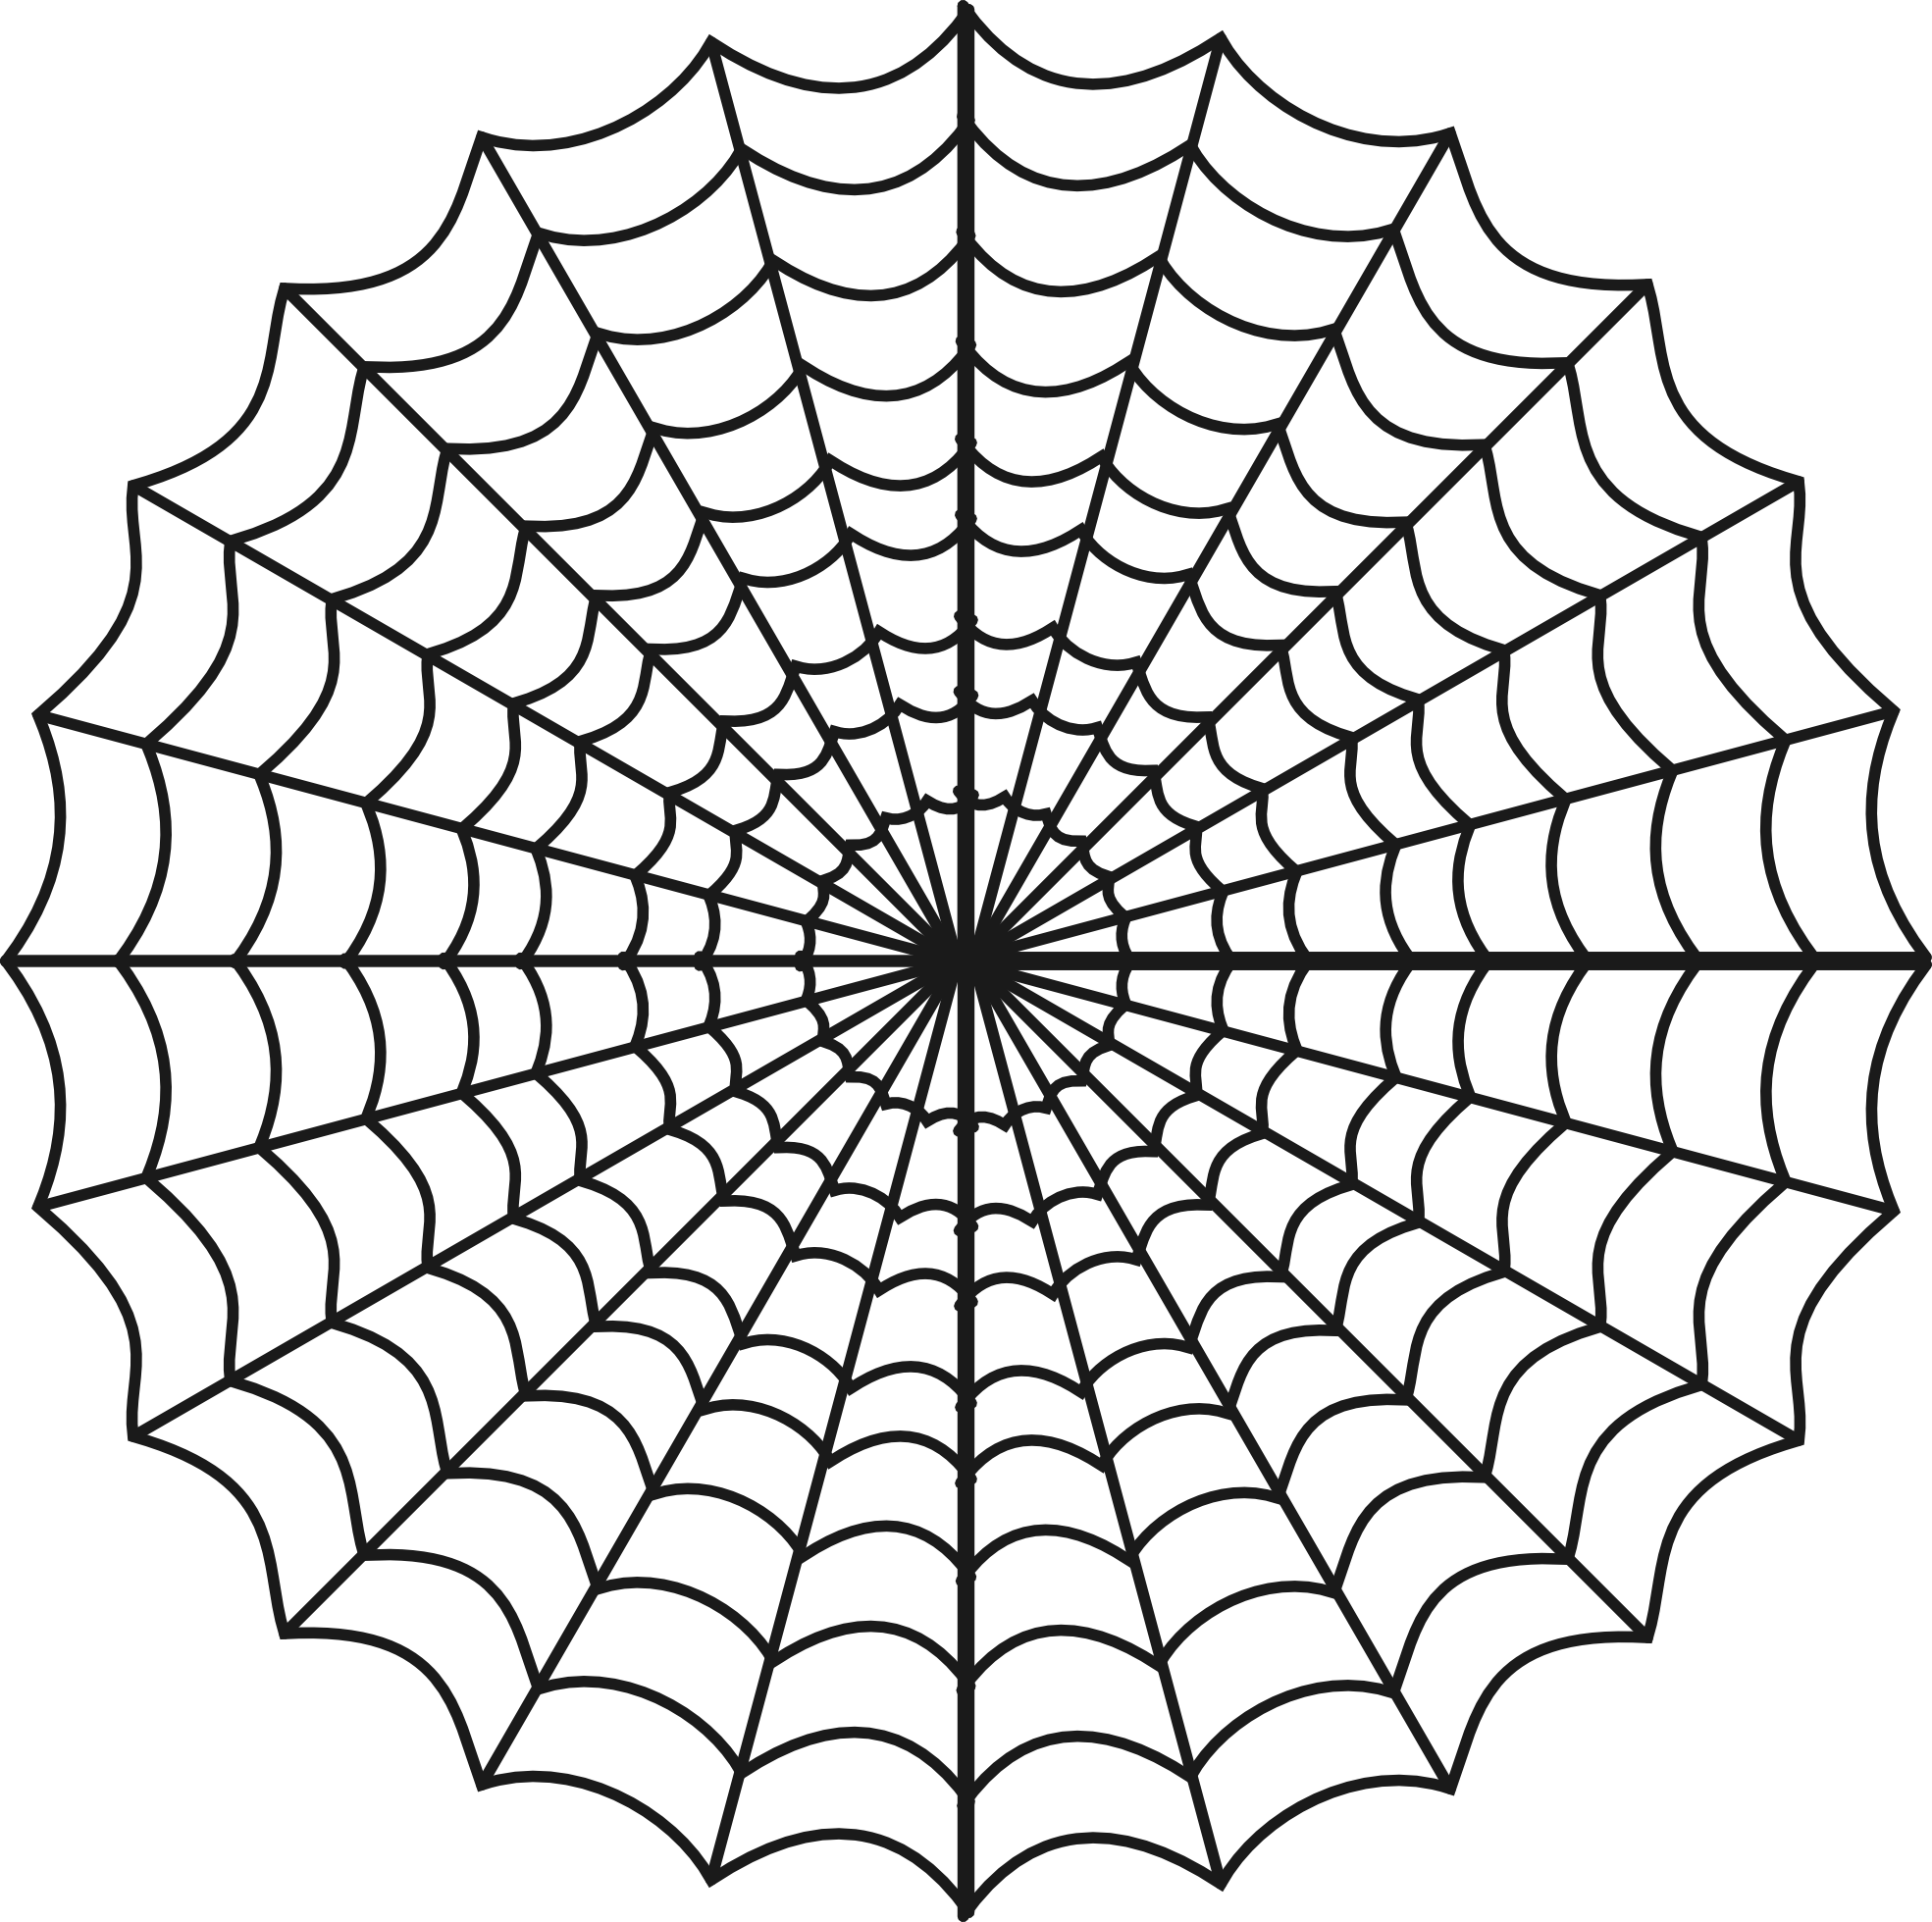 1969x1959 Best Spider Web Png